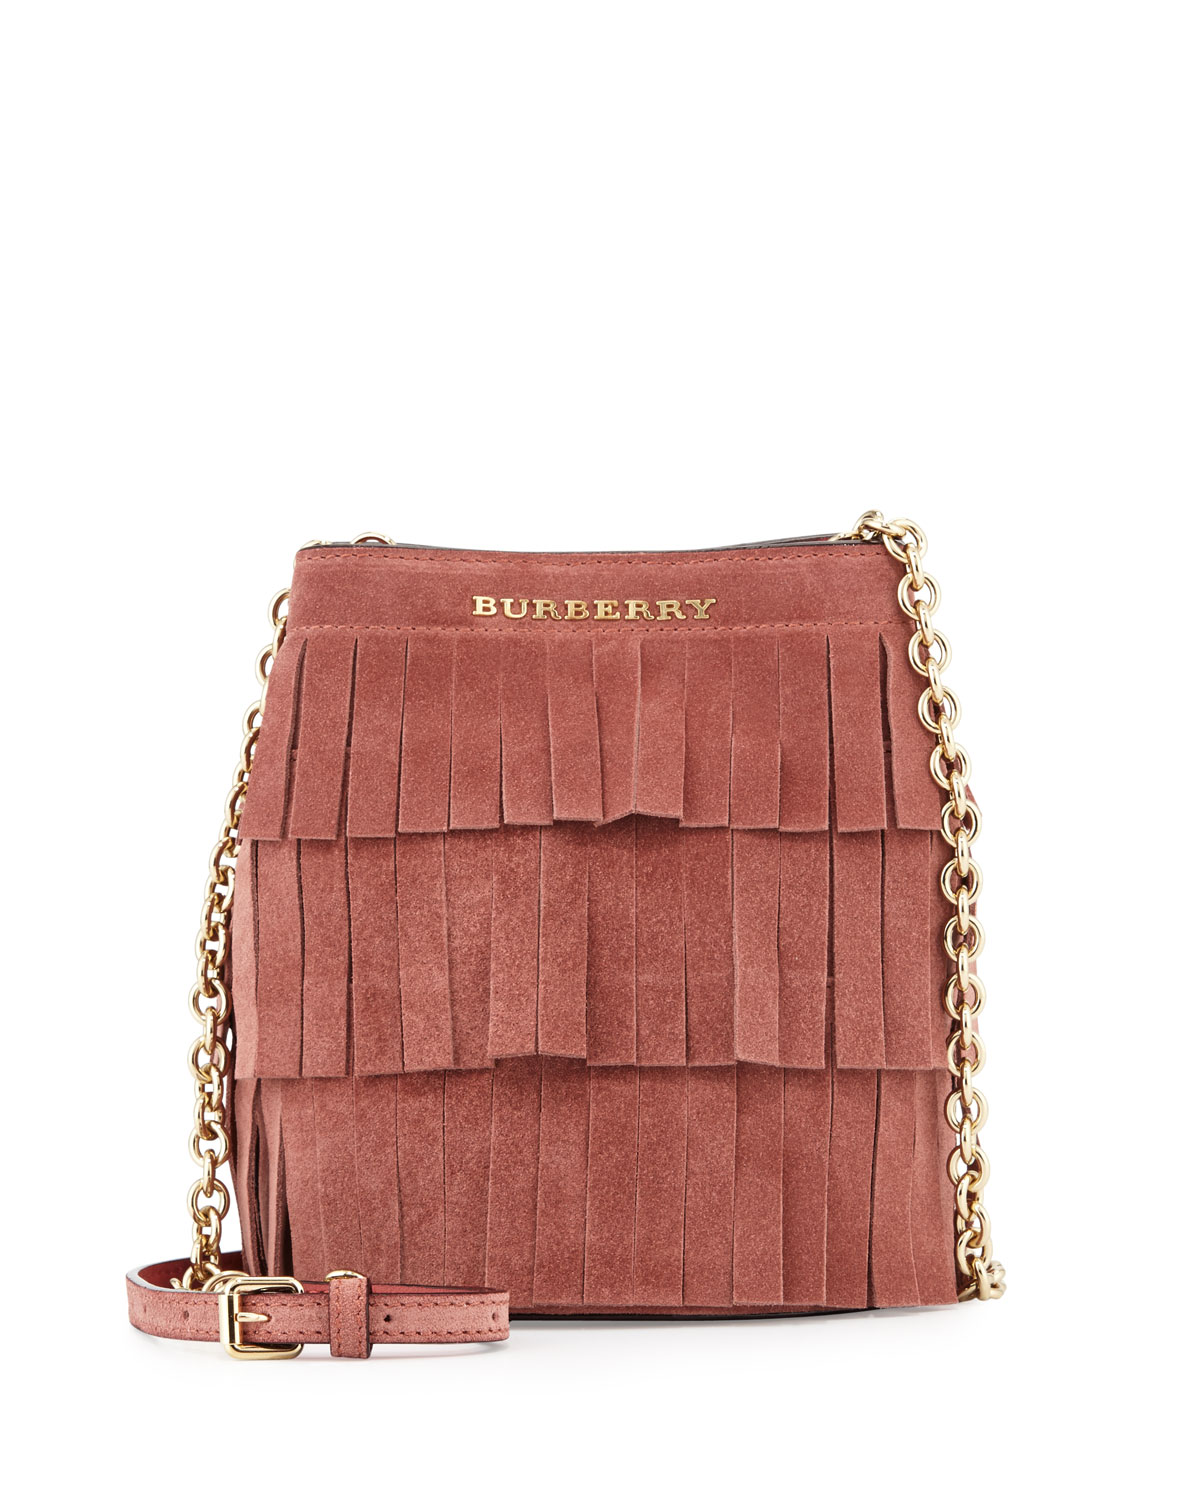 283623b5806 Burberry Baby Bucket Fringed Suede Bag, Russet Pink | Neiman Marcus